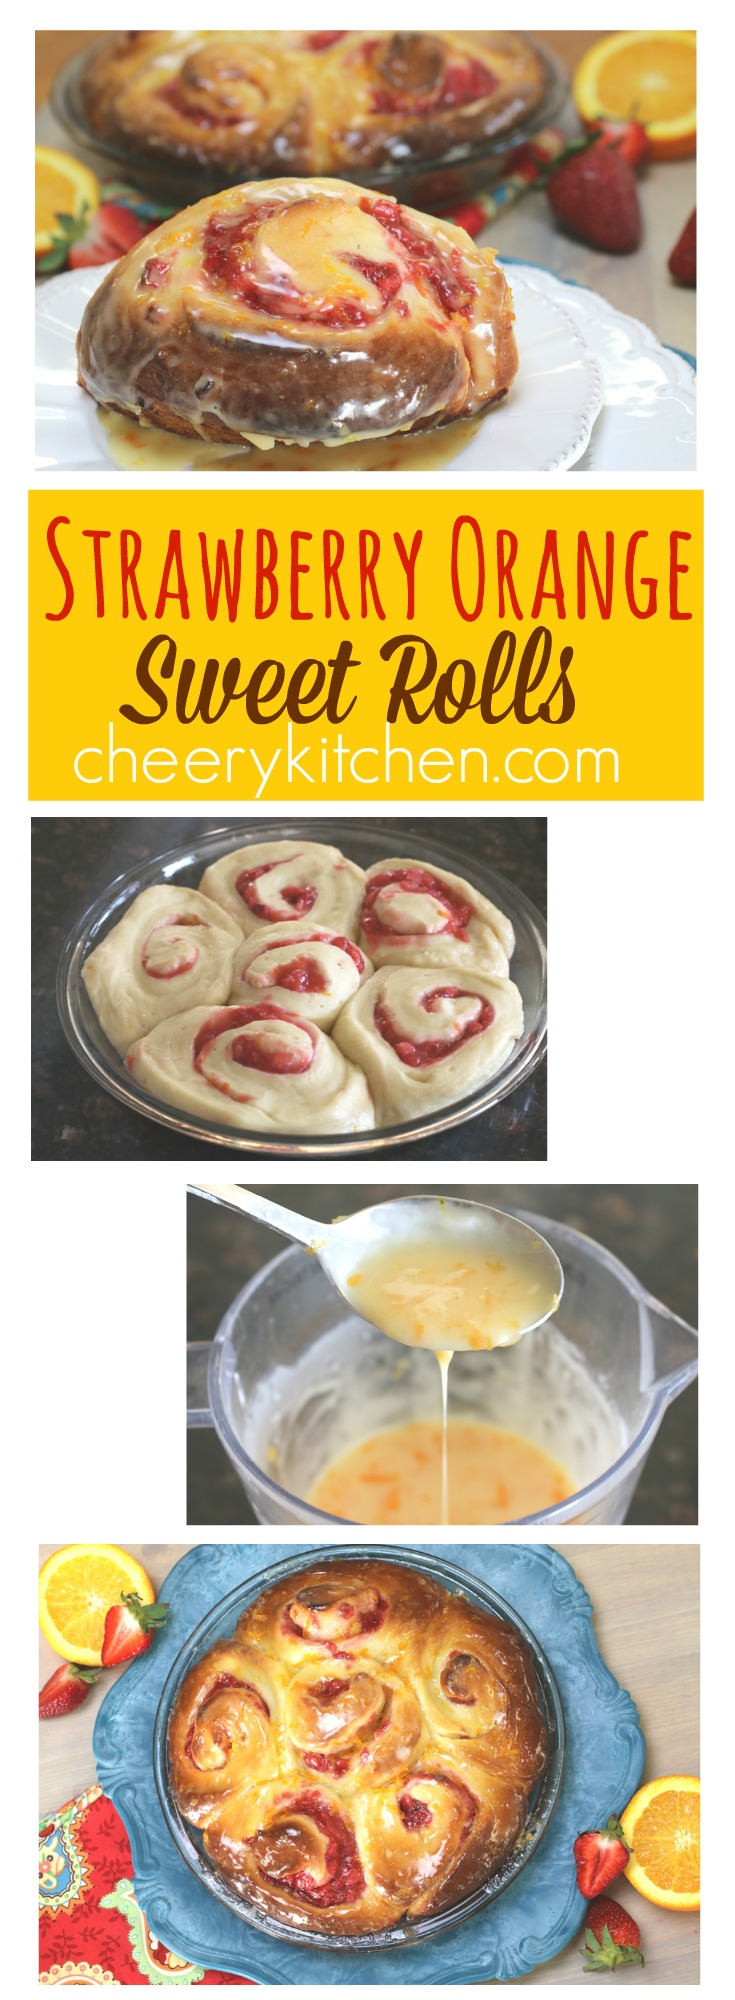 The best Strawberry Orange Sweet Rolls are tender and light yet packed with fresh strawberries and covered with orange glaze!